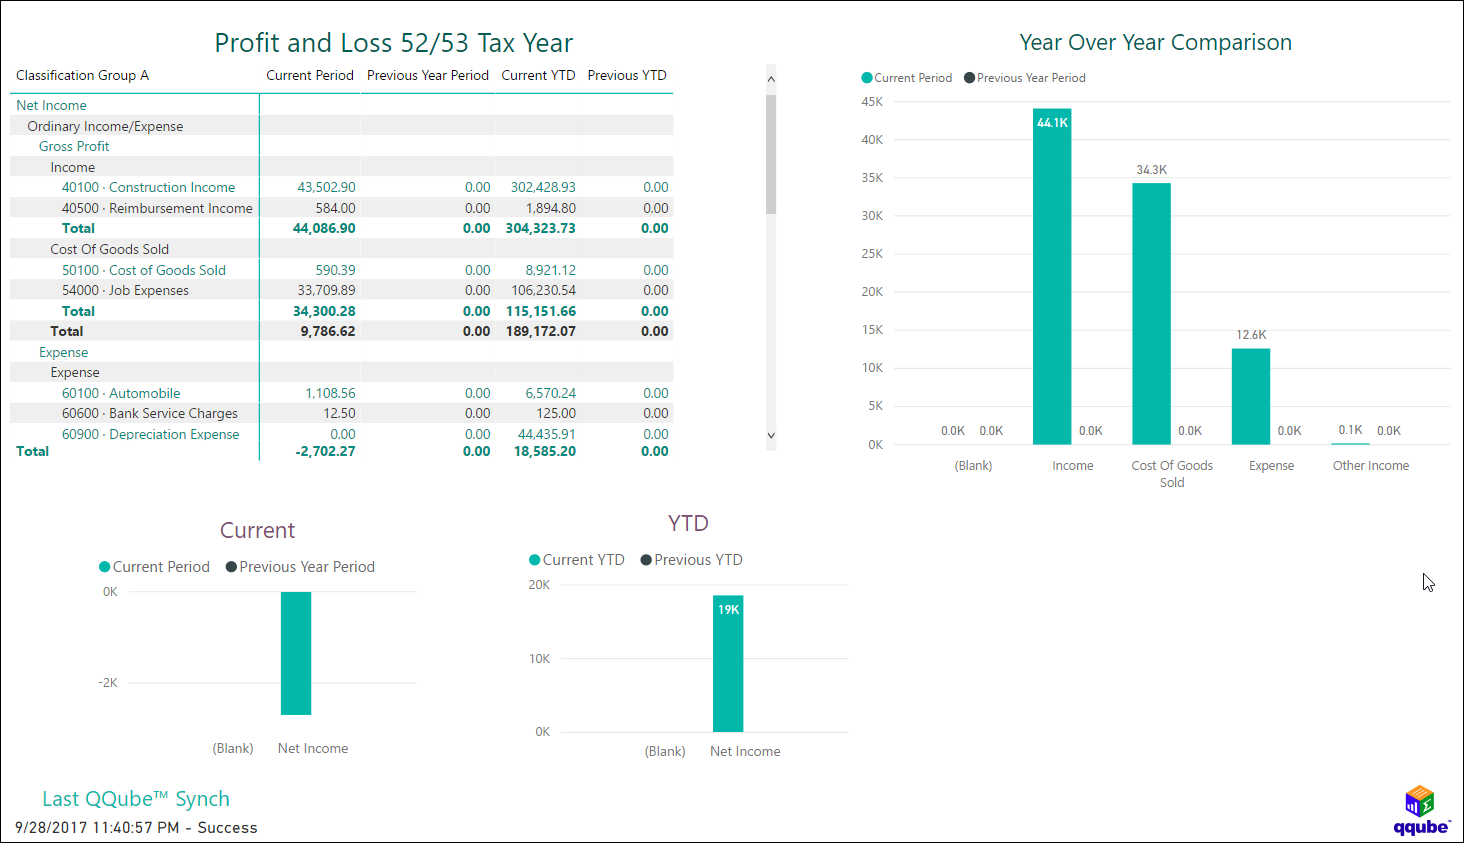 QQube and Power BI - Profit and Loss 52/53 Tax Year